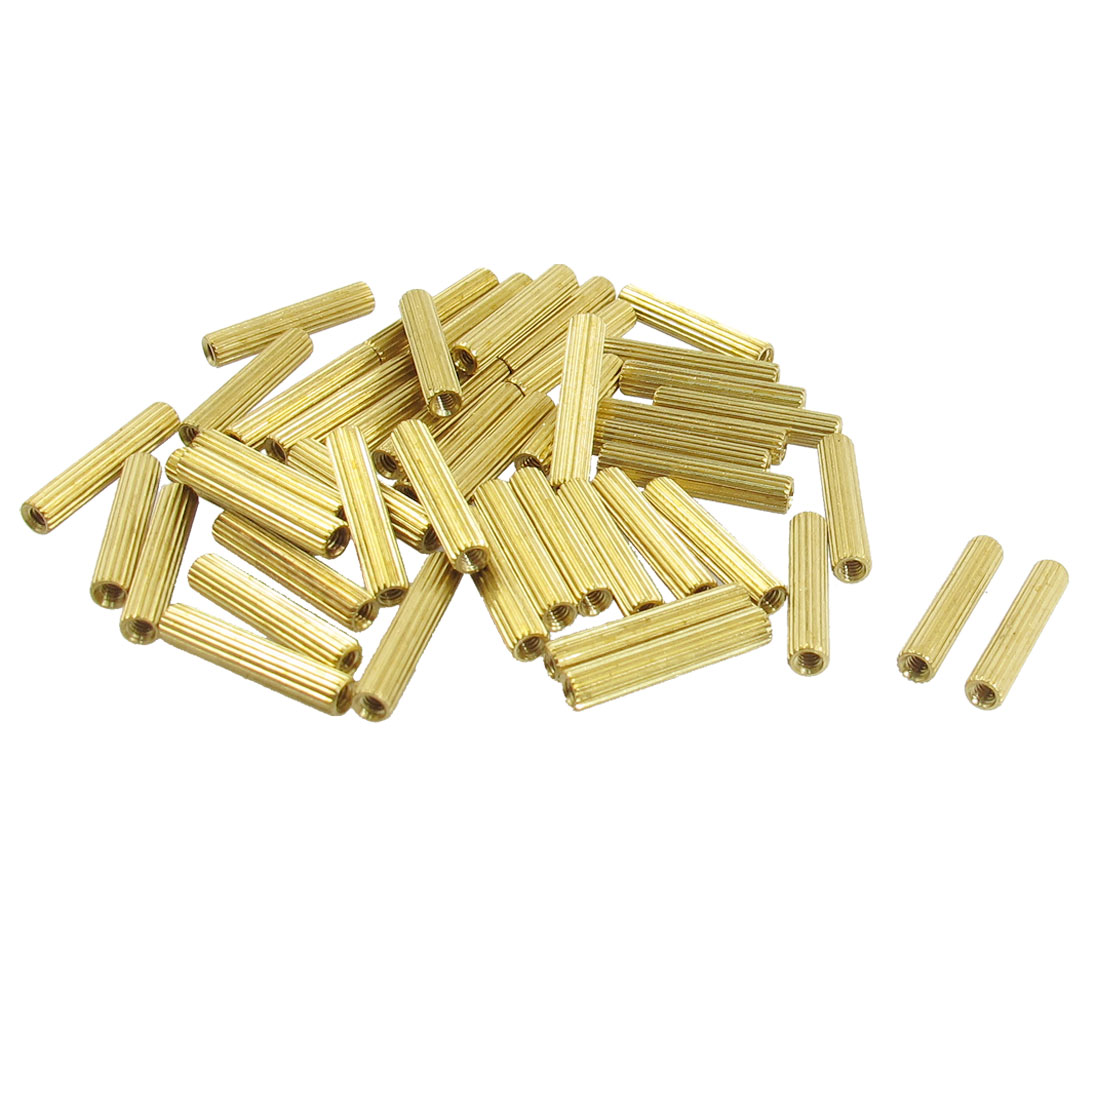 50 Pcs M2 Female Thread Cylindrical Brass Stand-off Support M2x16mm